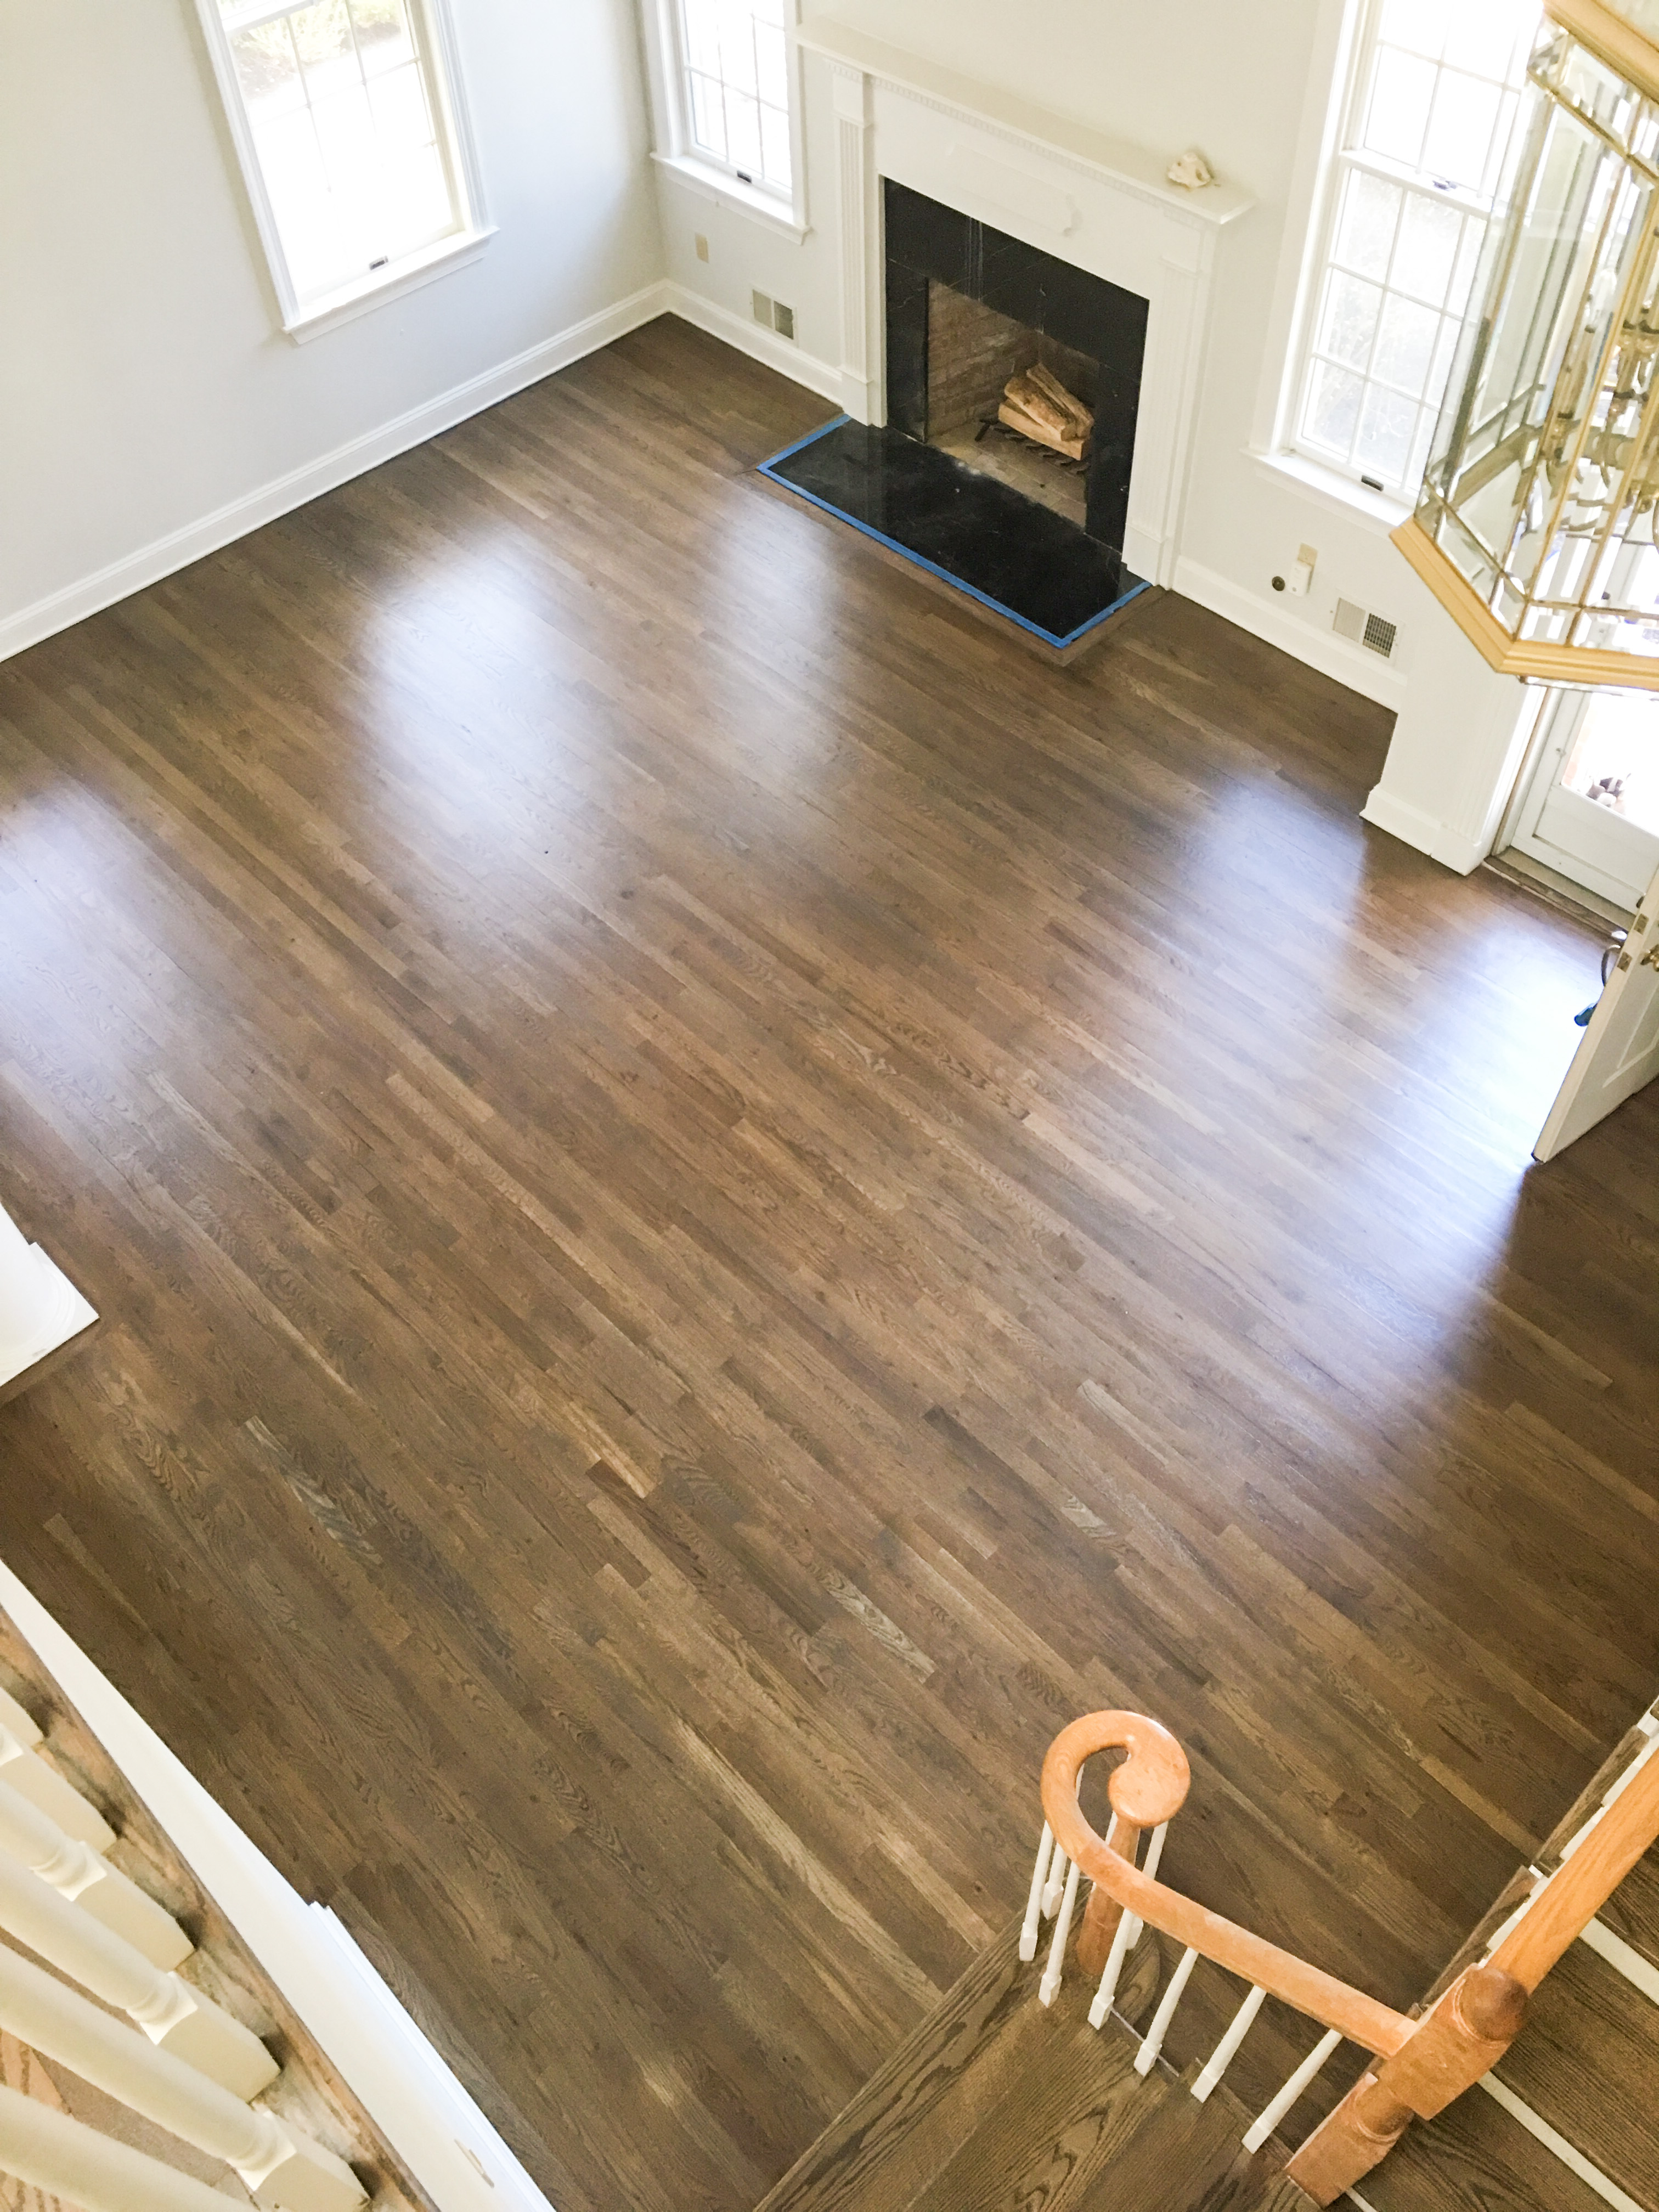 Choosing The Right Finish For Your Wood Floors Selecta